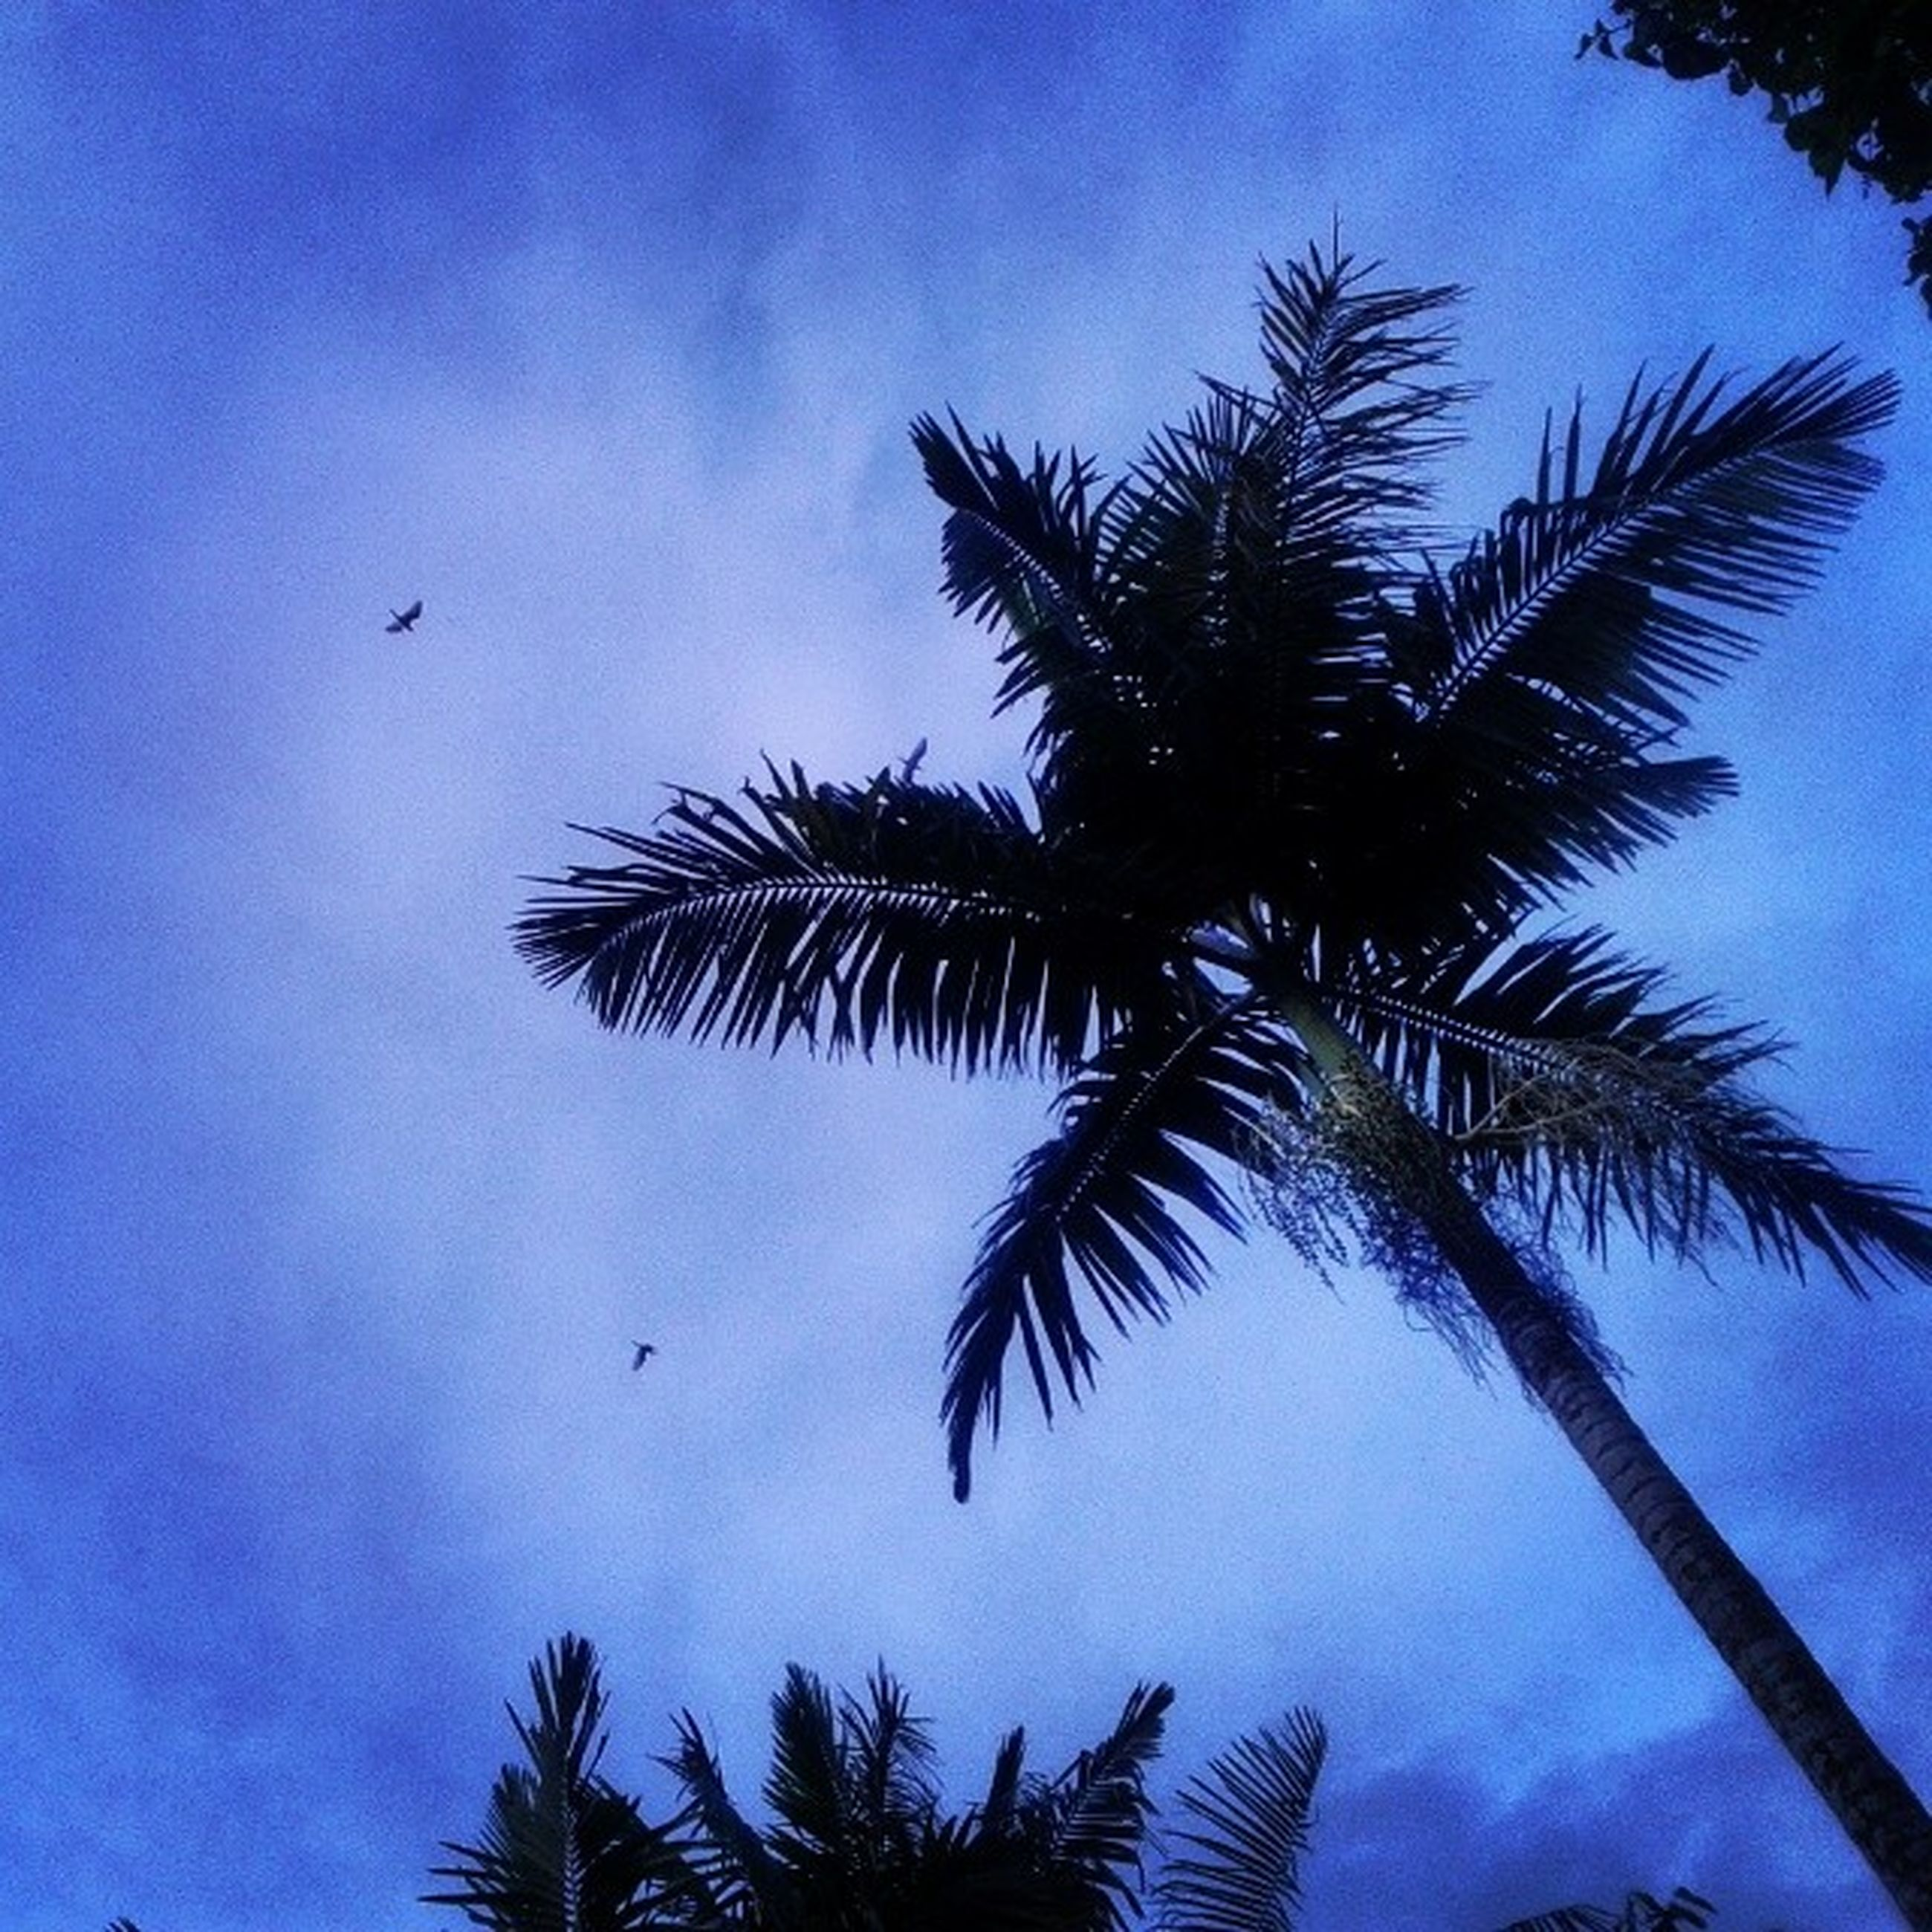 low angle view, palm tree, tree, silhouette, blue, sky, flying, bird, animal themes, nature, tranquility, beauty in nature, wildlife, animals in the wild, growth, scenics, outdoors, cloud - sky, no people, cloud